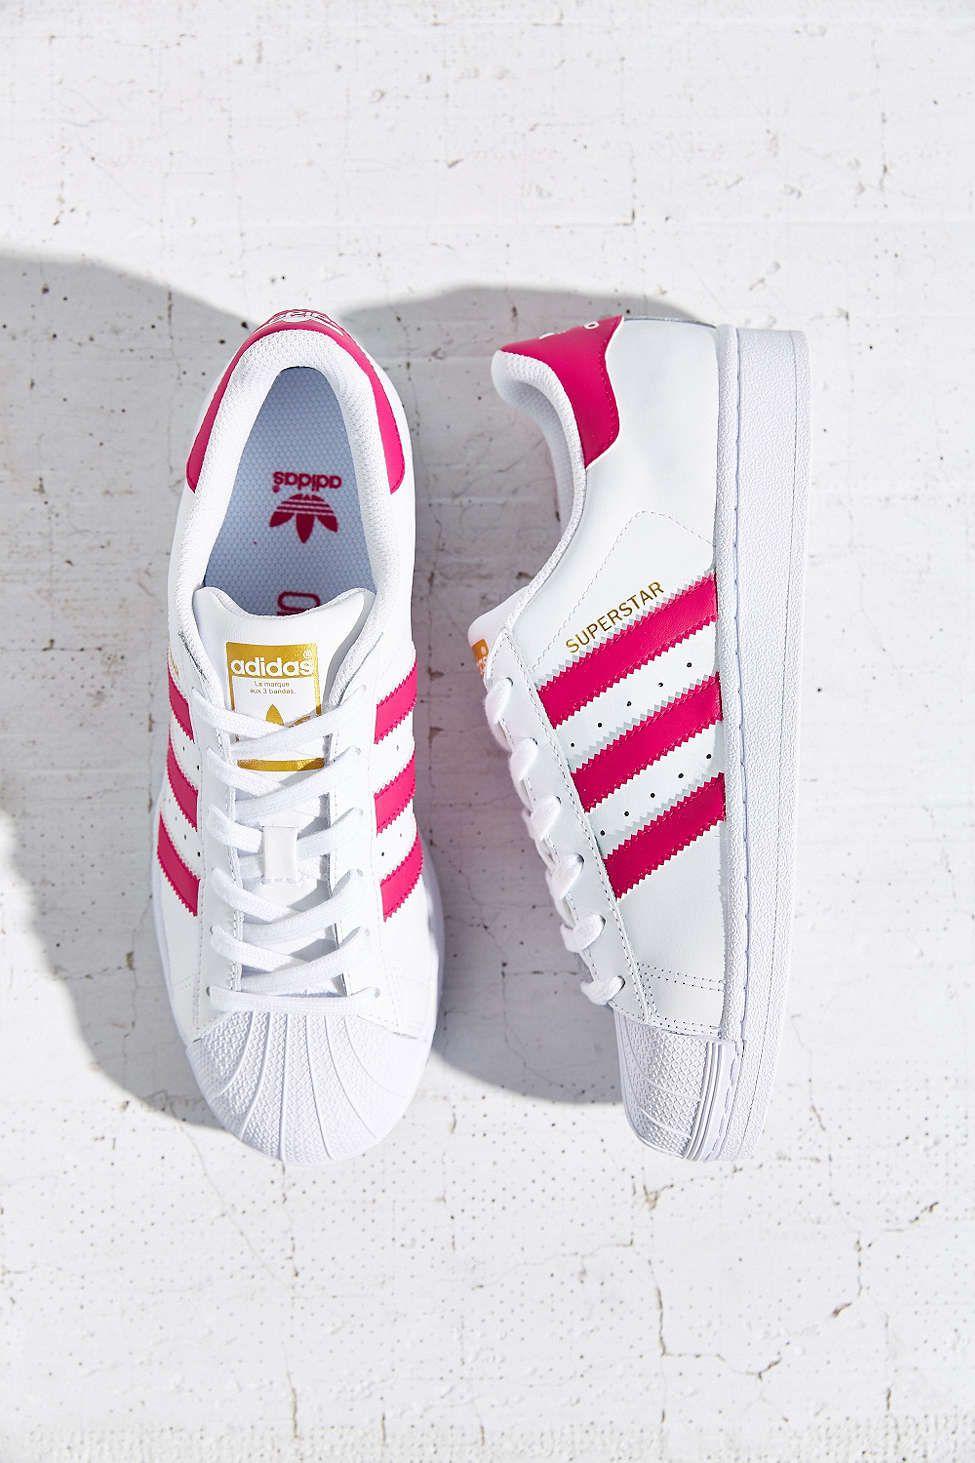 the latest 8f7e7 626ef adidas Originals Superstar Womens Sneaker. I got two pairs in middle school  and I still love them. Treat for losing weight.